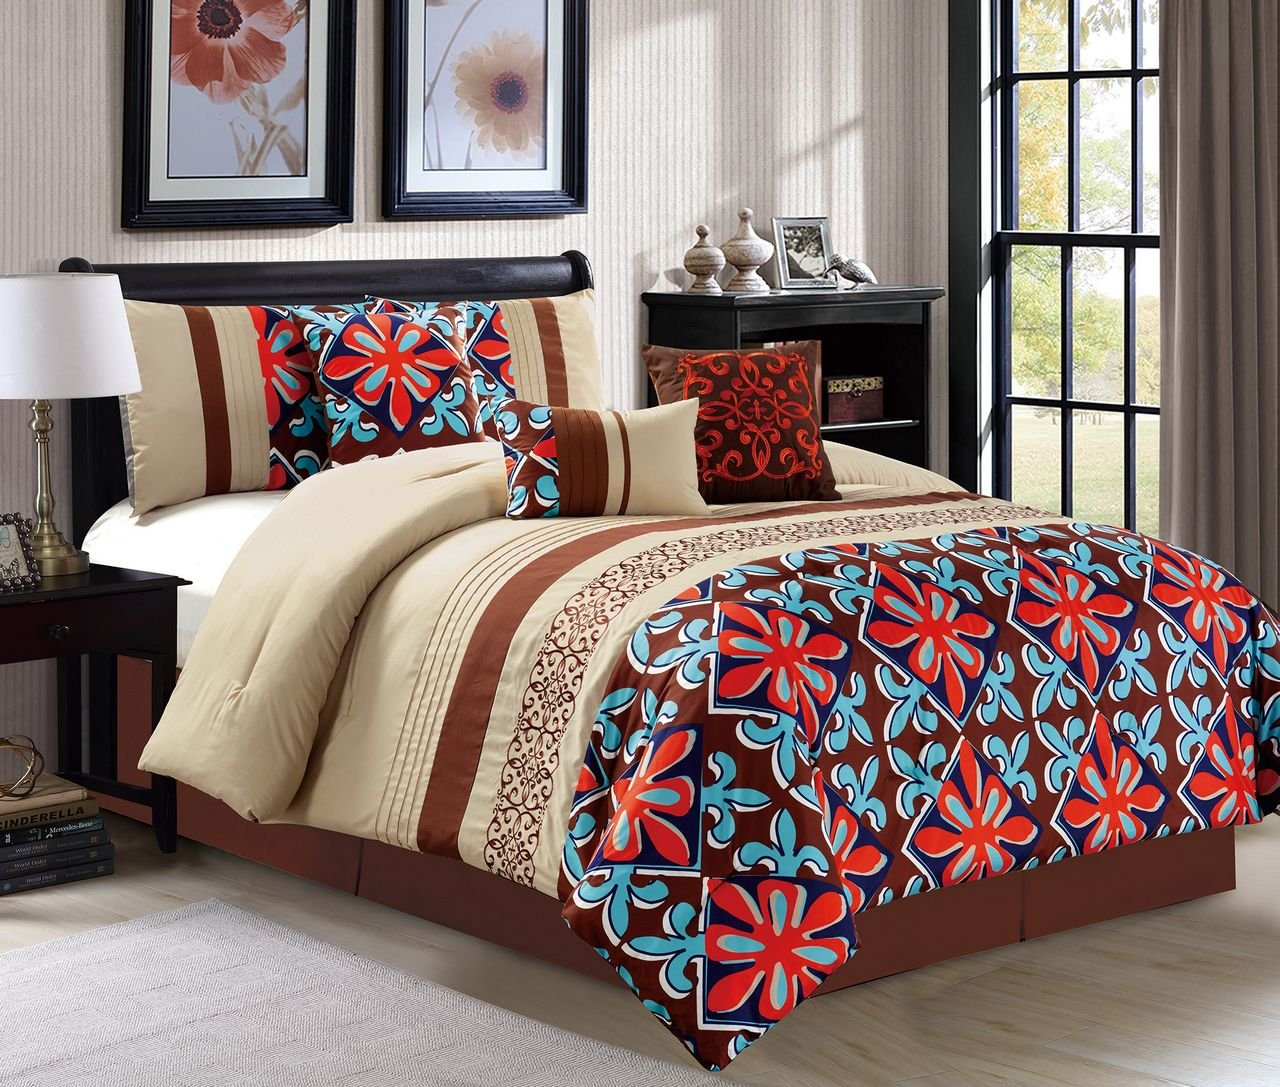 with unbelievable patchwork photos large king quatrefoil cheap white astonishing stardust twin duvet single bedding gold cover orange concept burnt brown bag inspiring of queen comforter size sets files black image to u trellis in sale unicorn set and curtain matching bright inspiration curtains